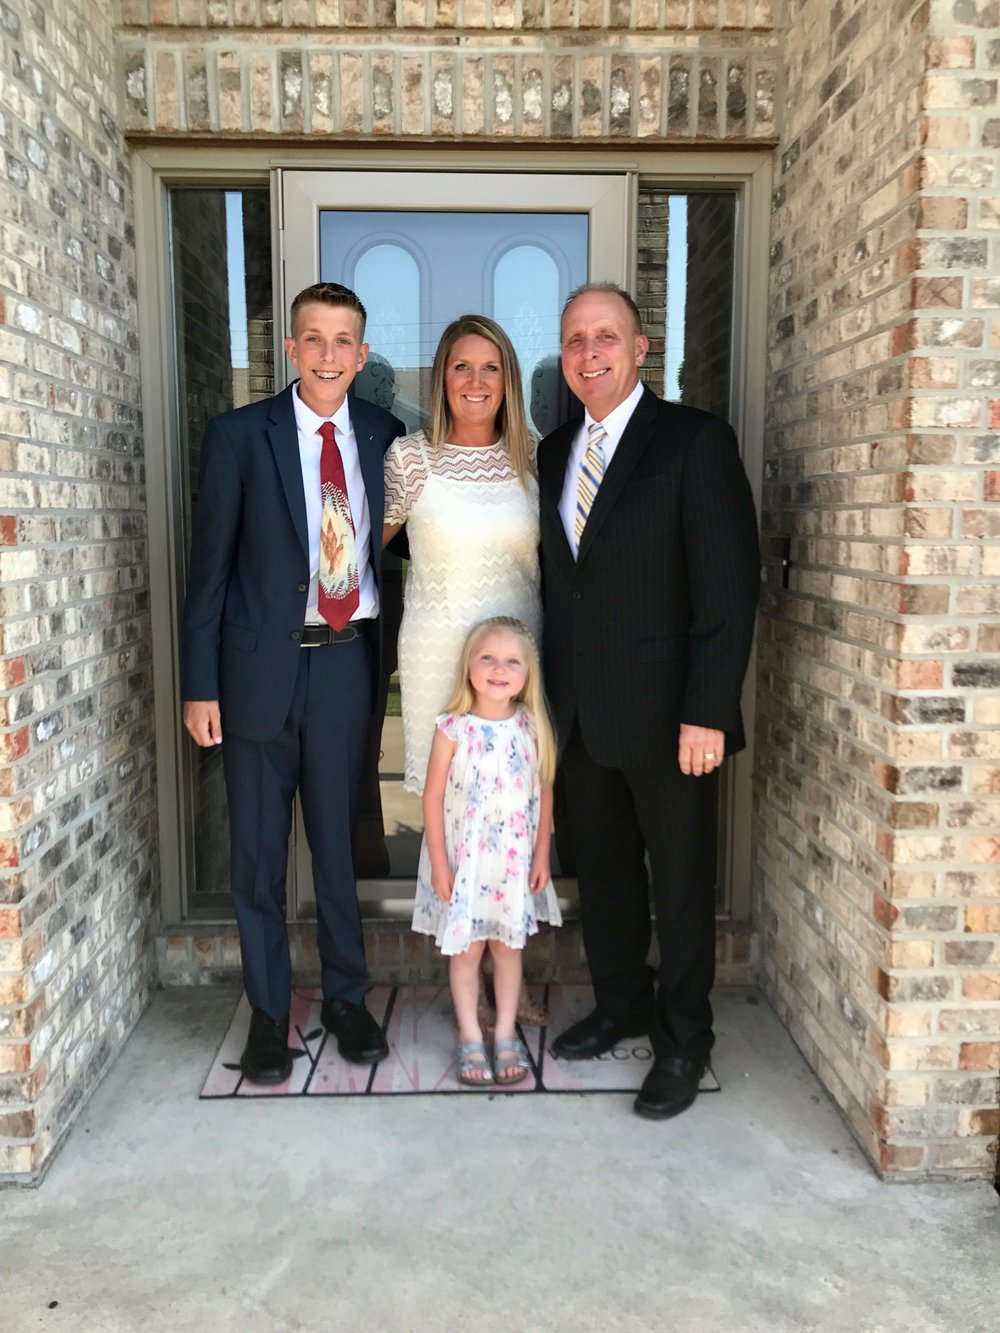 Bickett Family 2017 From Left to Right Jacob (JB) Bickett, Kristen Bickett, Christopher Bickett. Stella Bickett